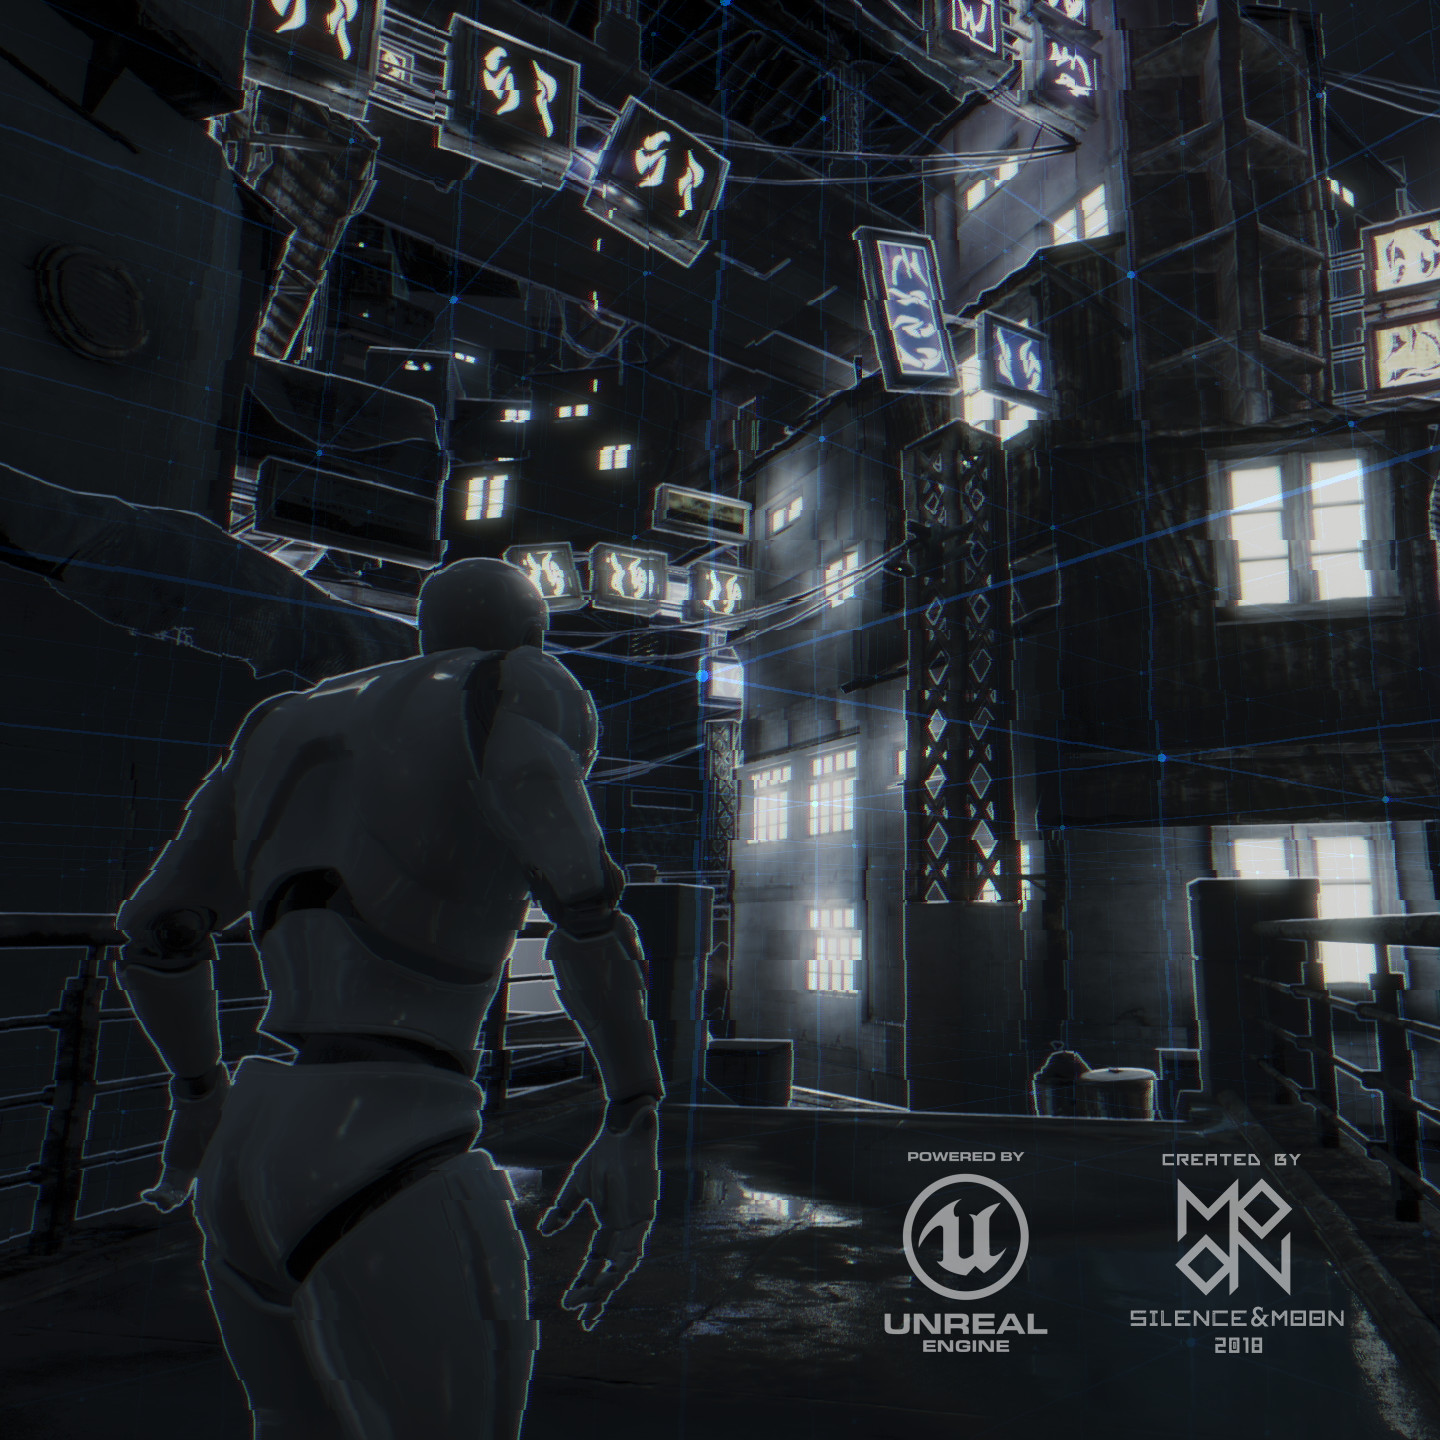 Yue Jia Remake The Detect Vfx Of Detroit Become Human Using Unreal Engine 4